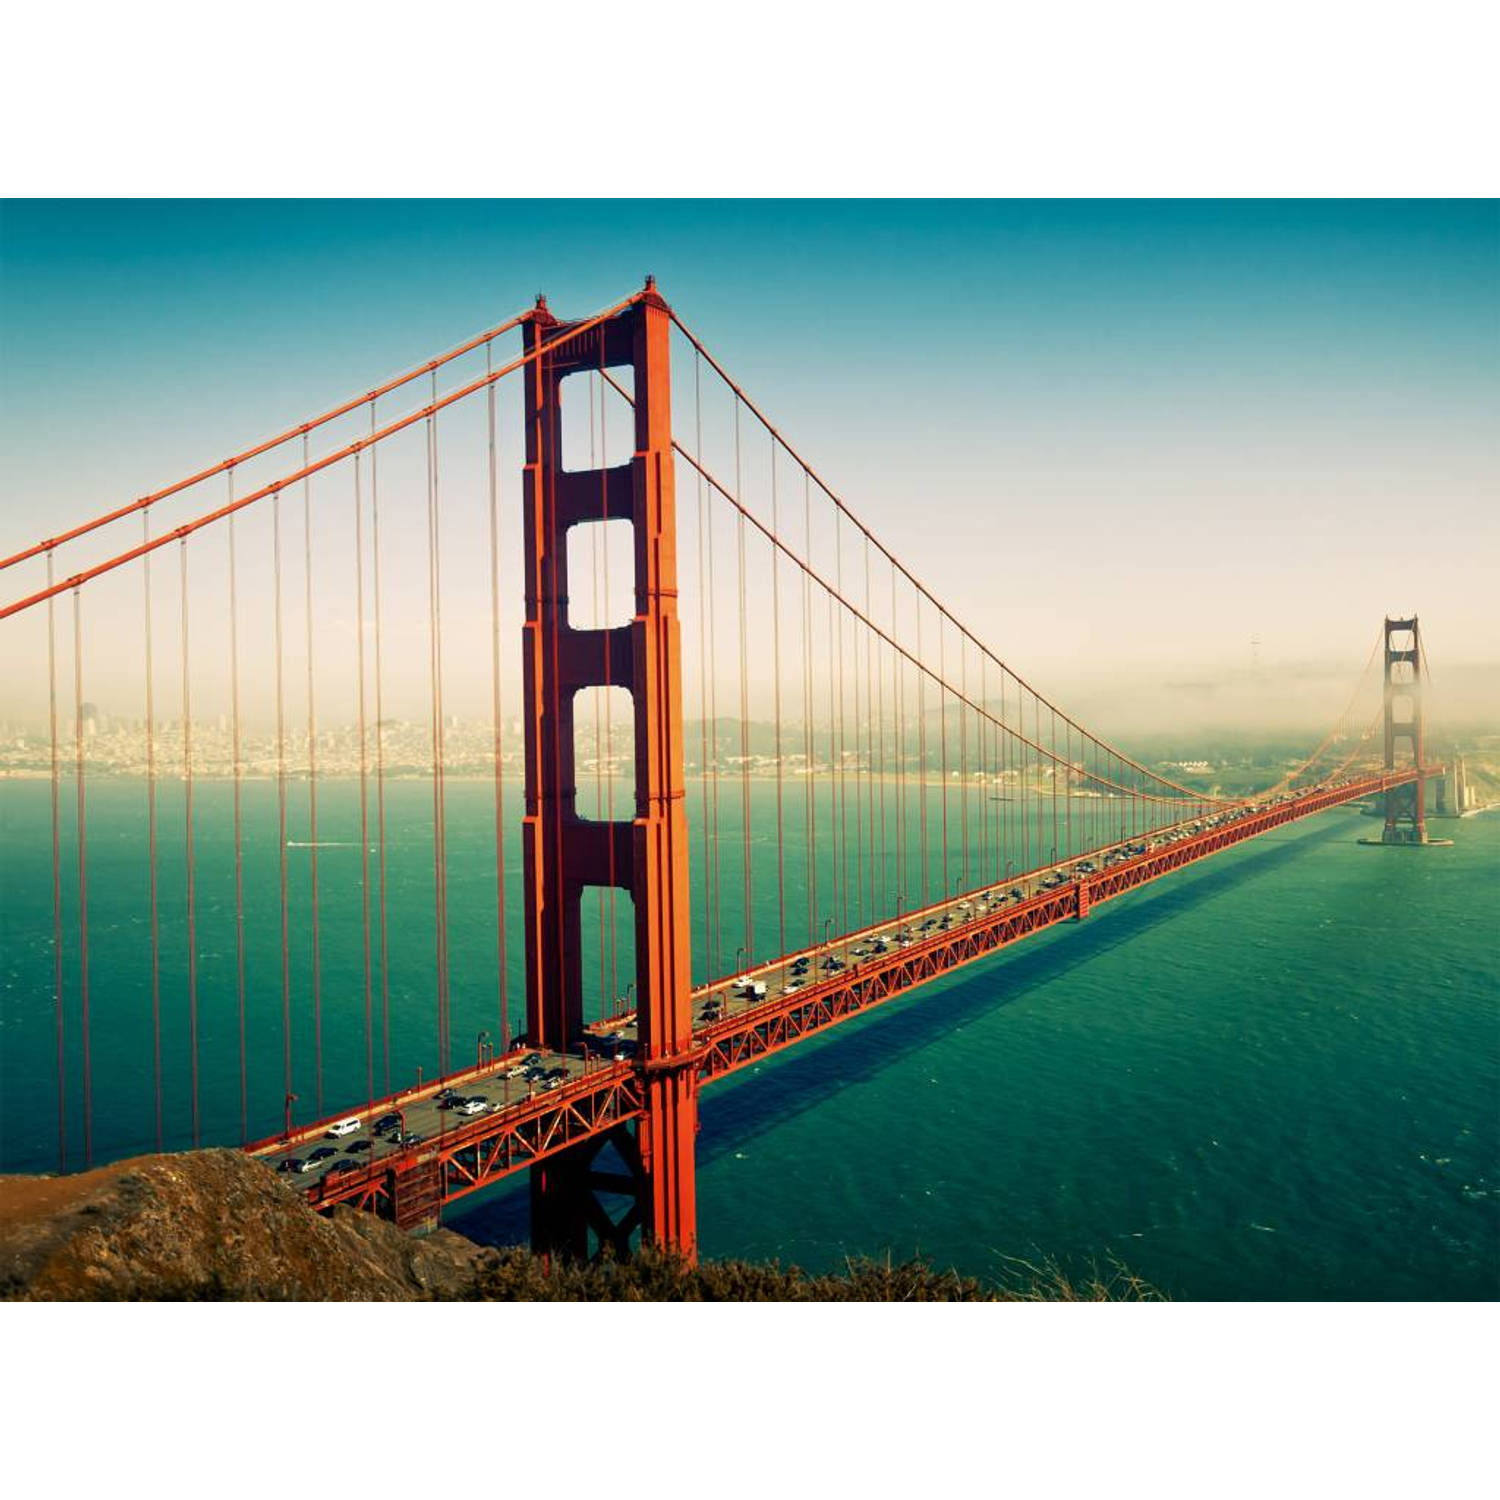 San Francisco Golden Gate Bridge - 232 cm x 315 cm - Multi